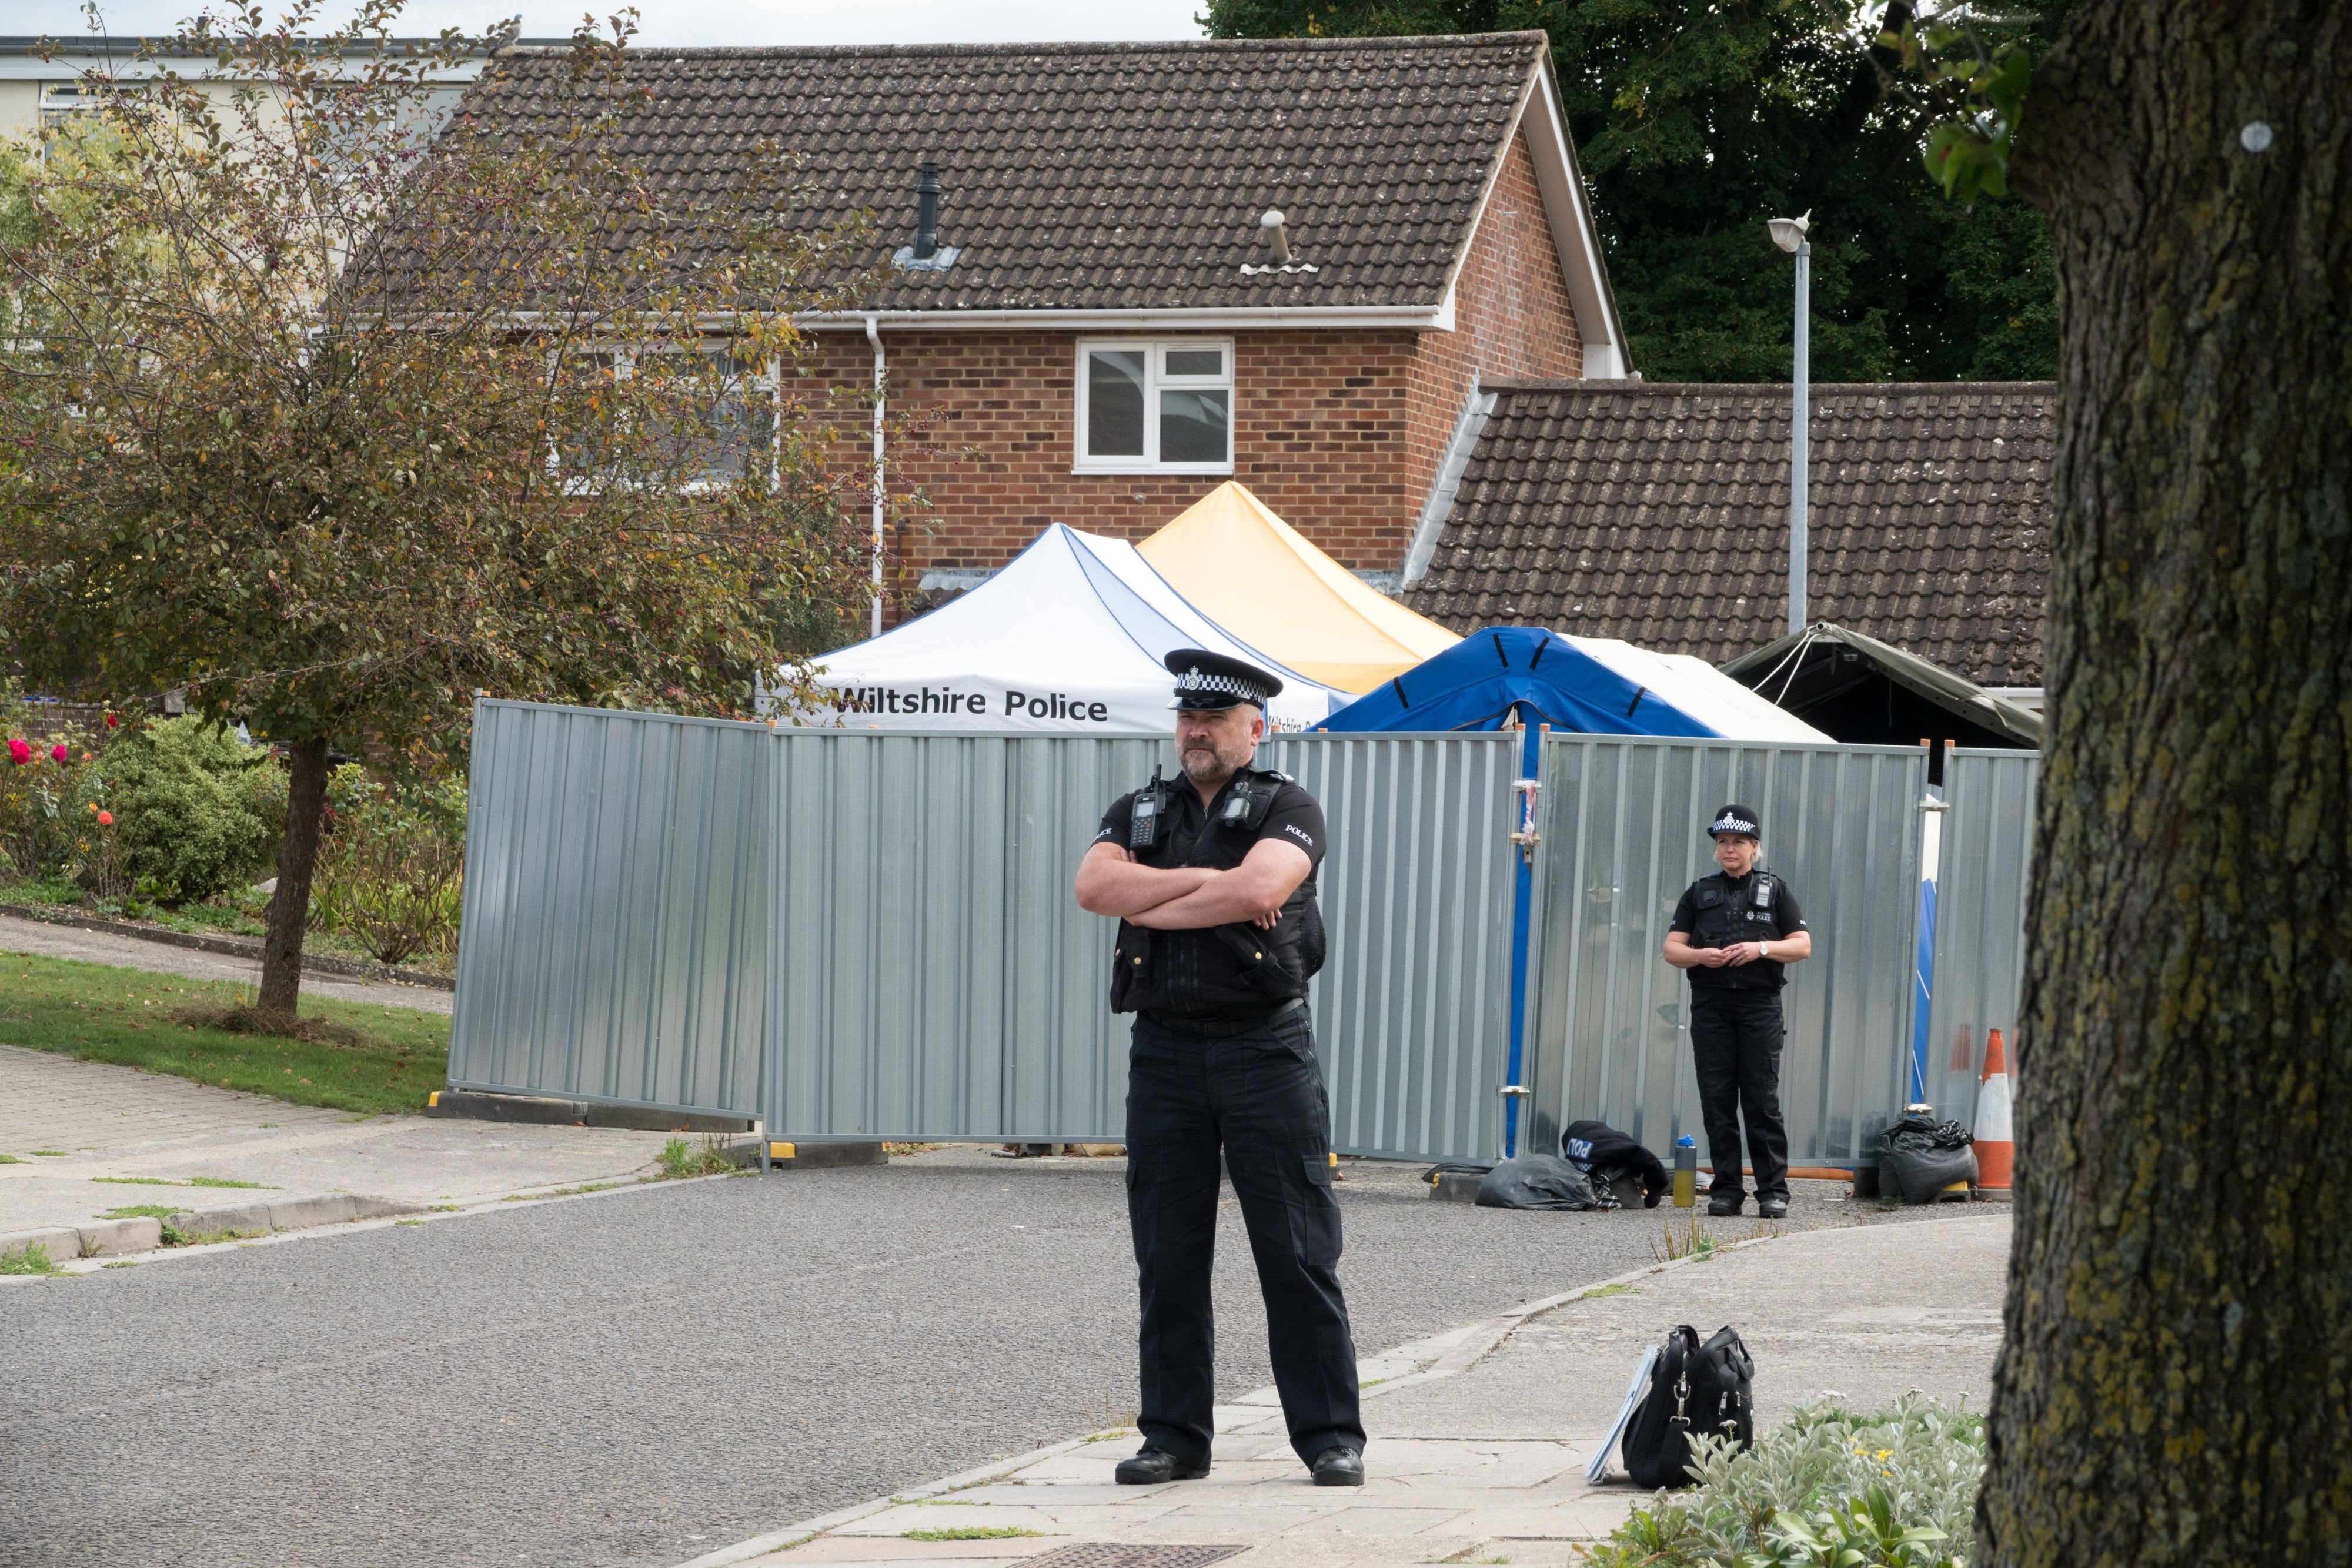 London has threatened to punish the suspects in the poisoning Skrobala